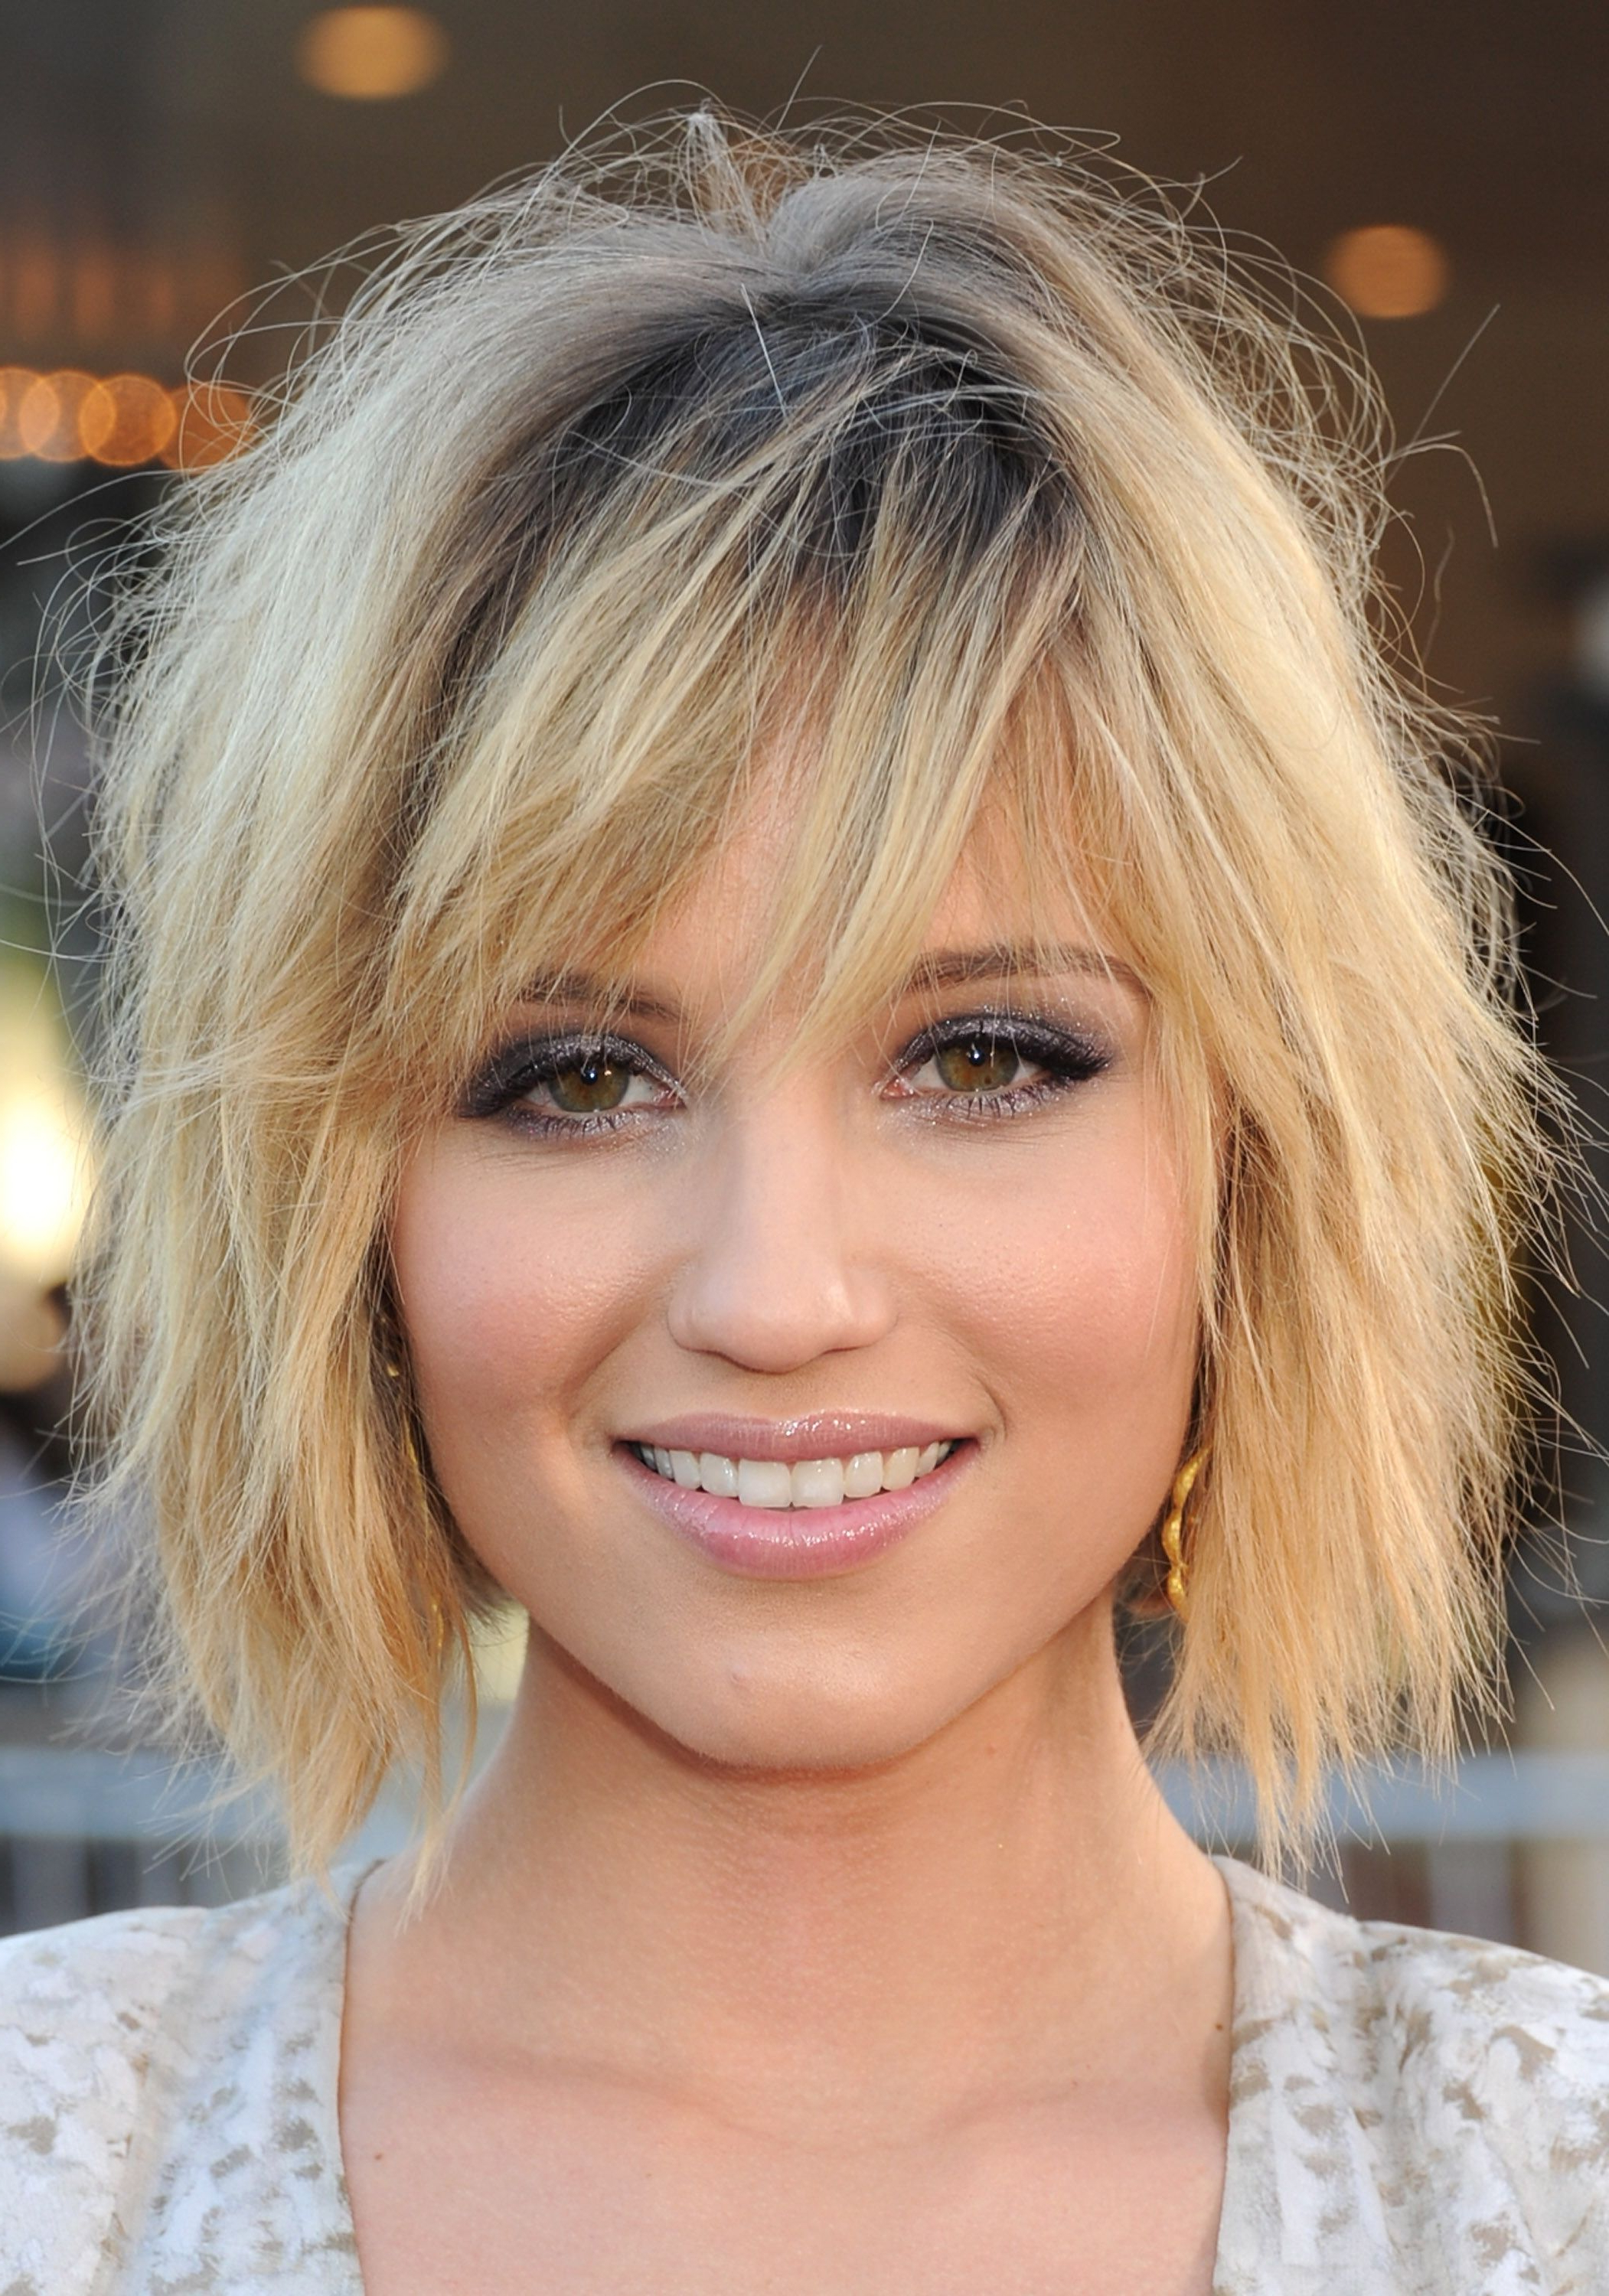 Hairstyles For Long Faces Regarding Short Haircuts For Long Faces Inside Short Haircuts For Long Faces (View 4 of 25)